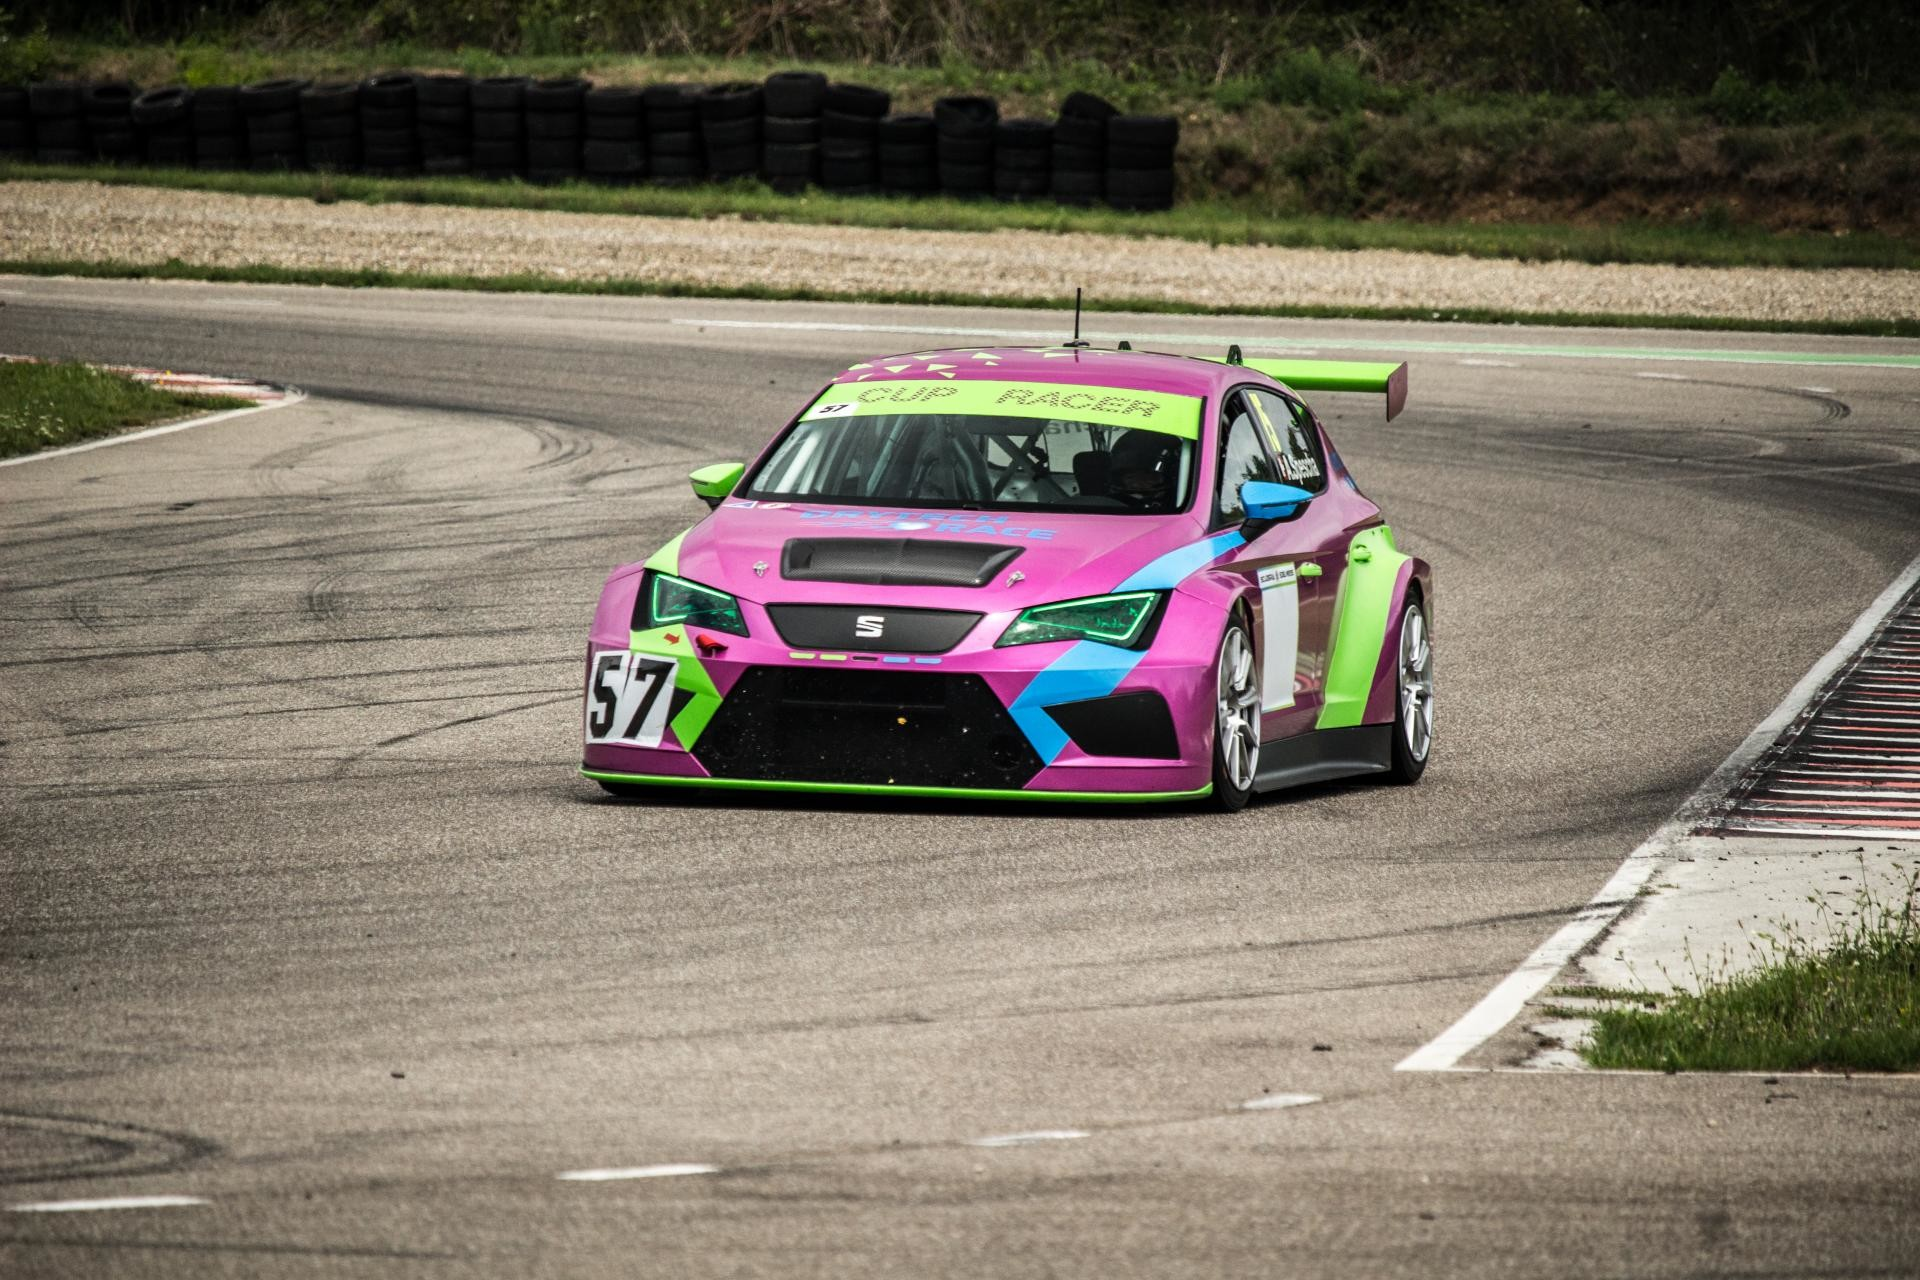 28072017-IMG_8045 - Seat Leon Cup Racer m